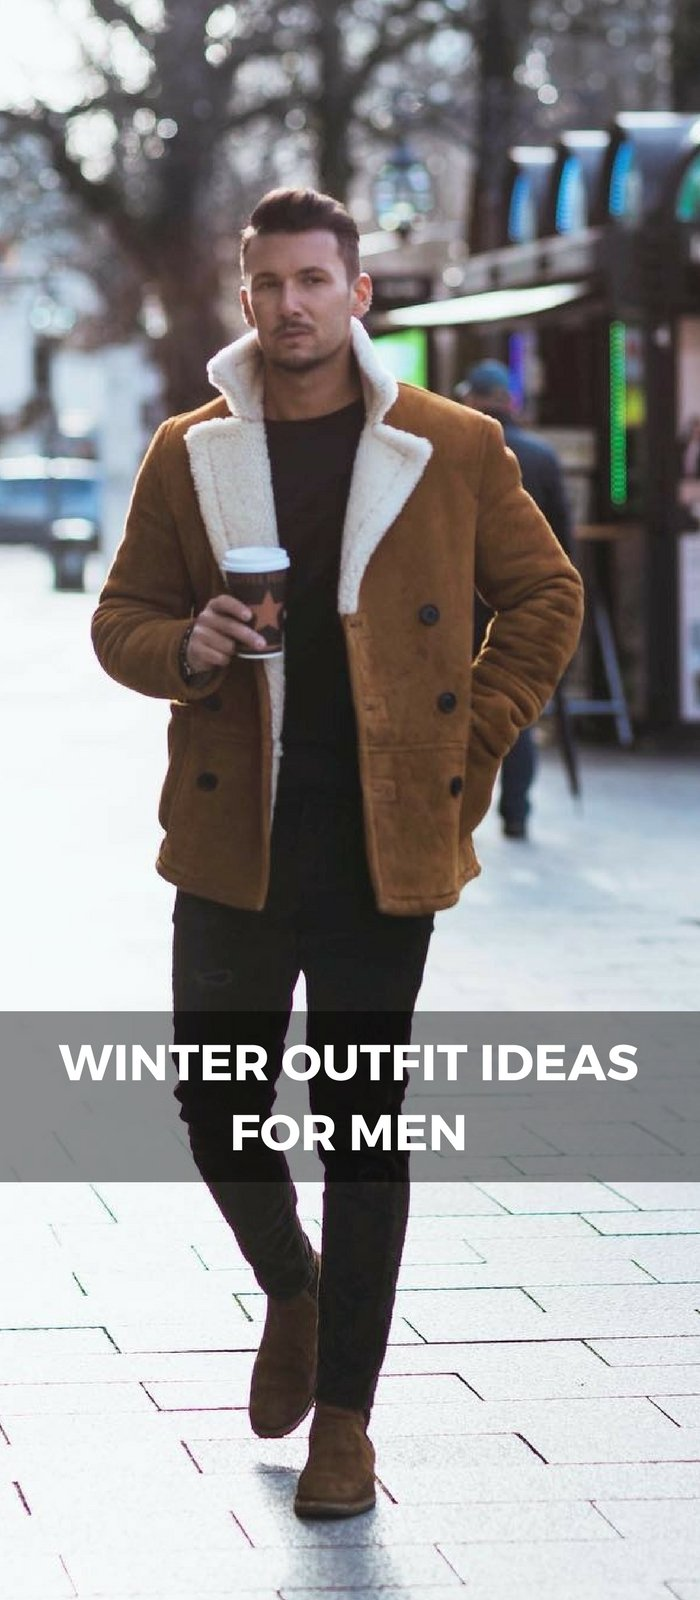 8 Coolest Winter Outfit Ideas For Men Tickabout